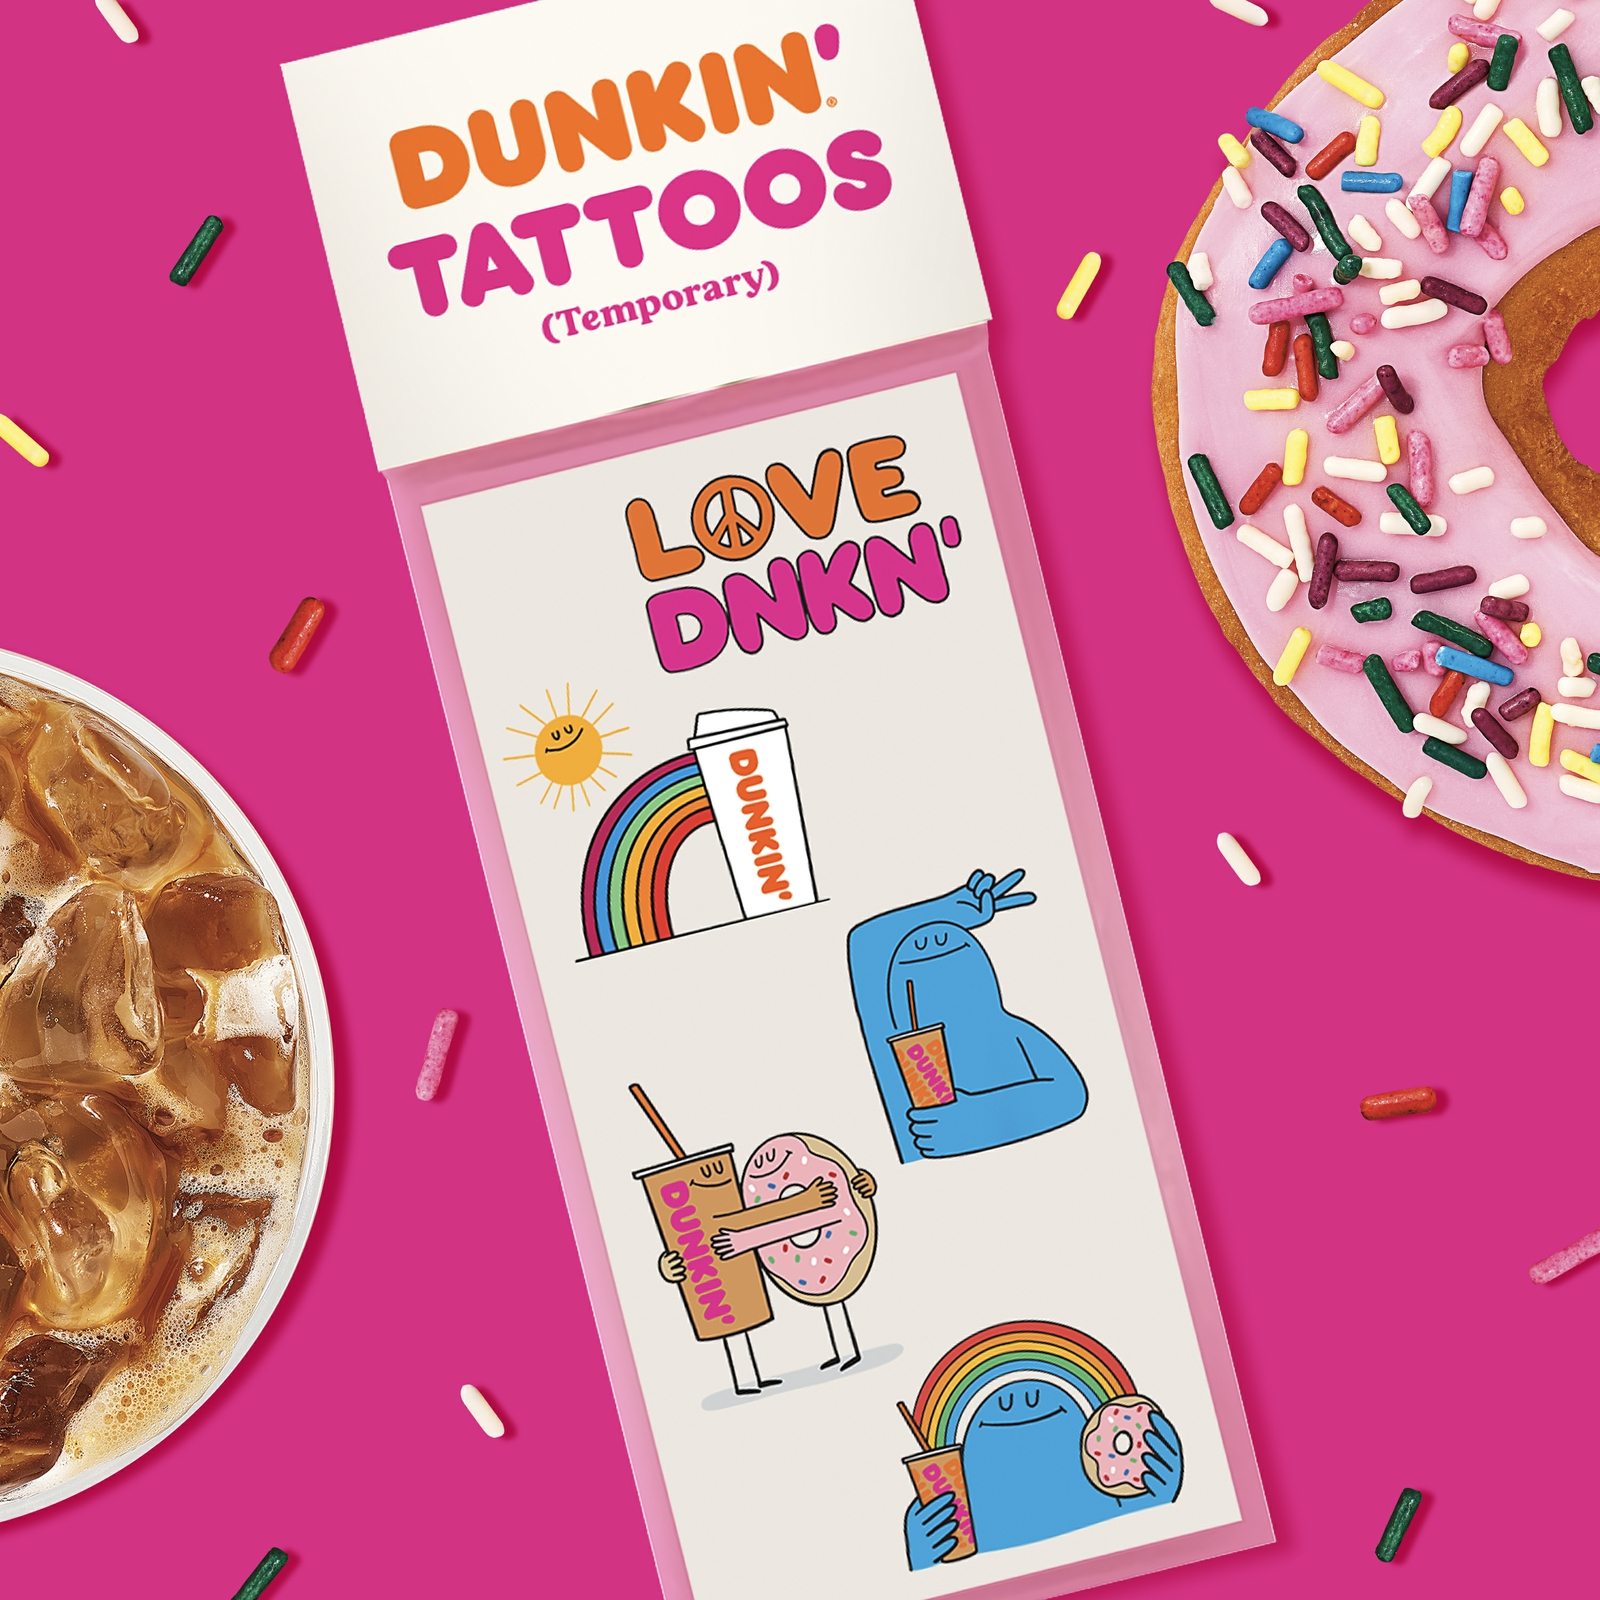 Celebrate National Tattoo Day with Some Sweet, Temporary Ink from Dunkin'